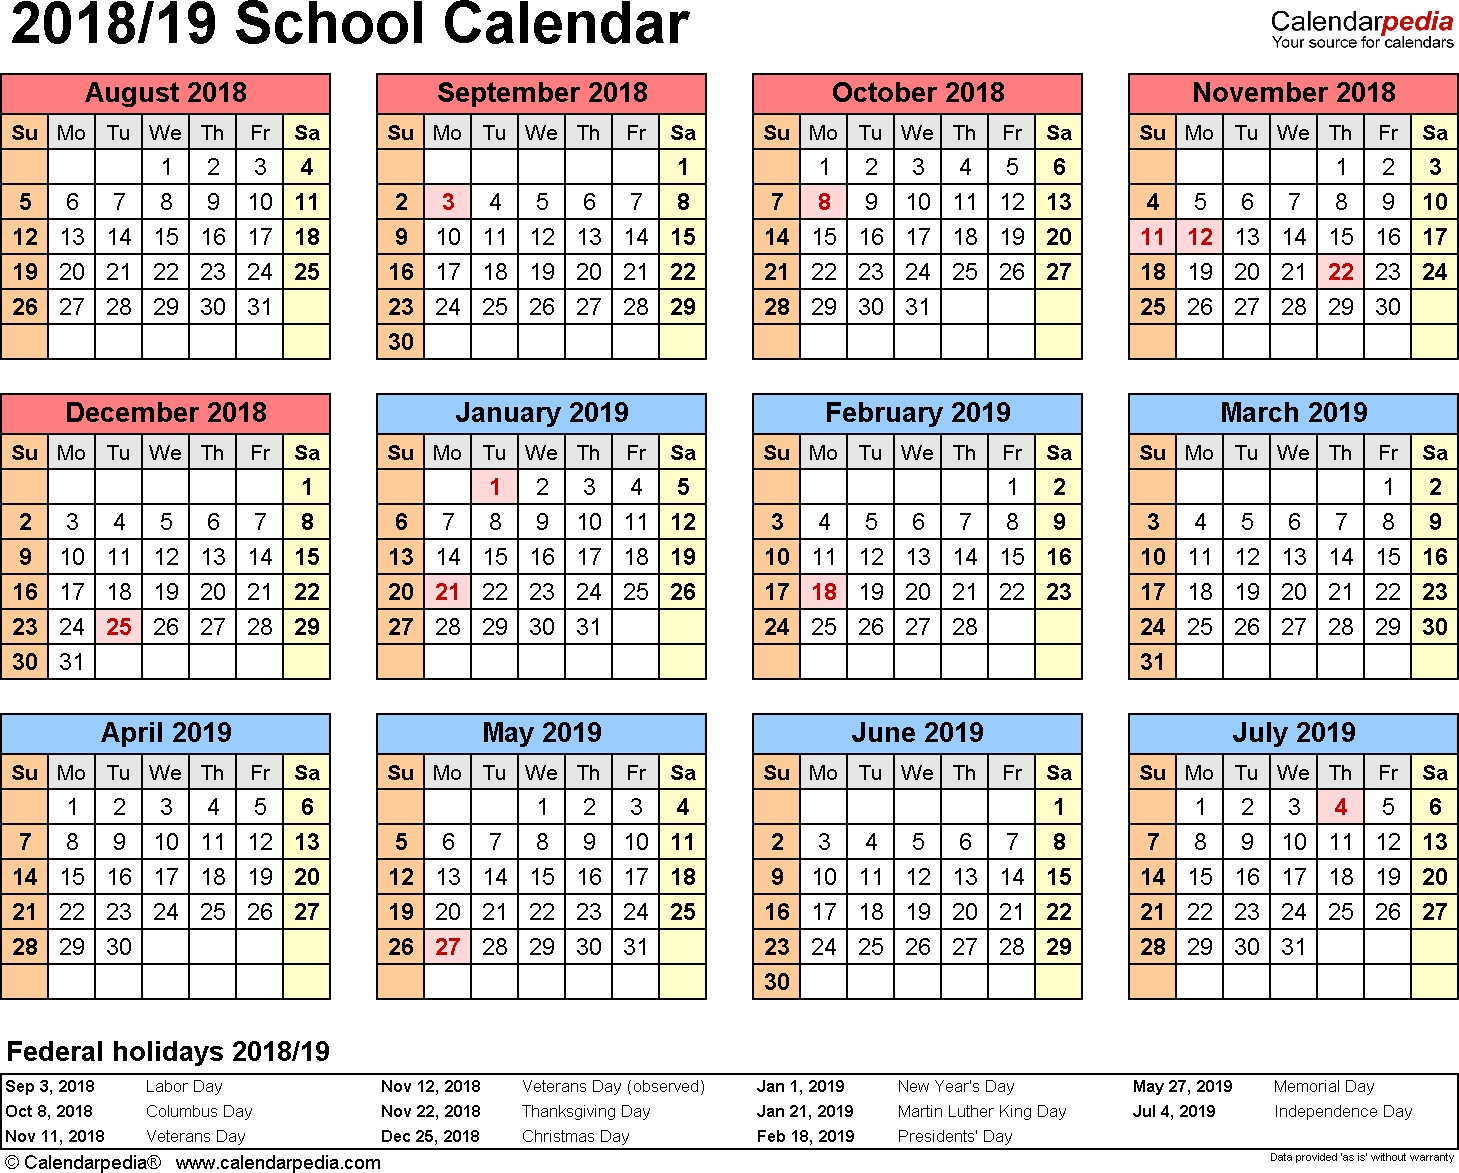 School Calendars 2018/2019 As Free Printable Word Templates_Free Printable School Calendar 17-18